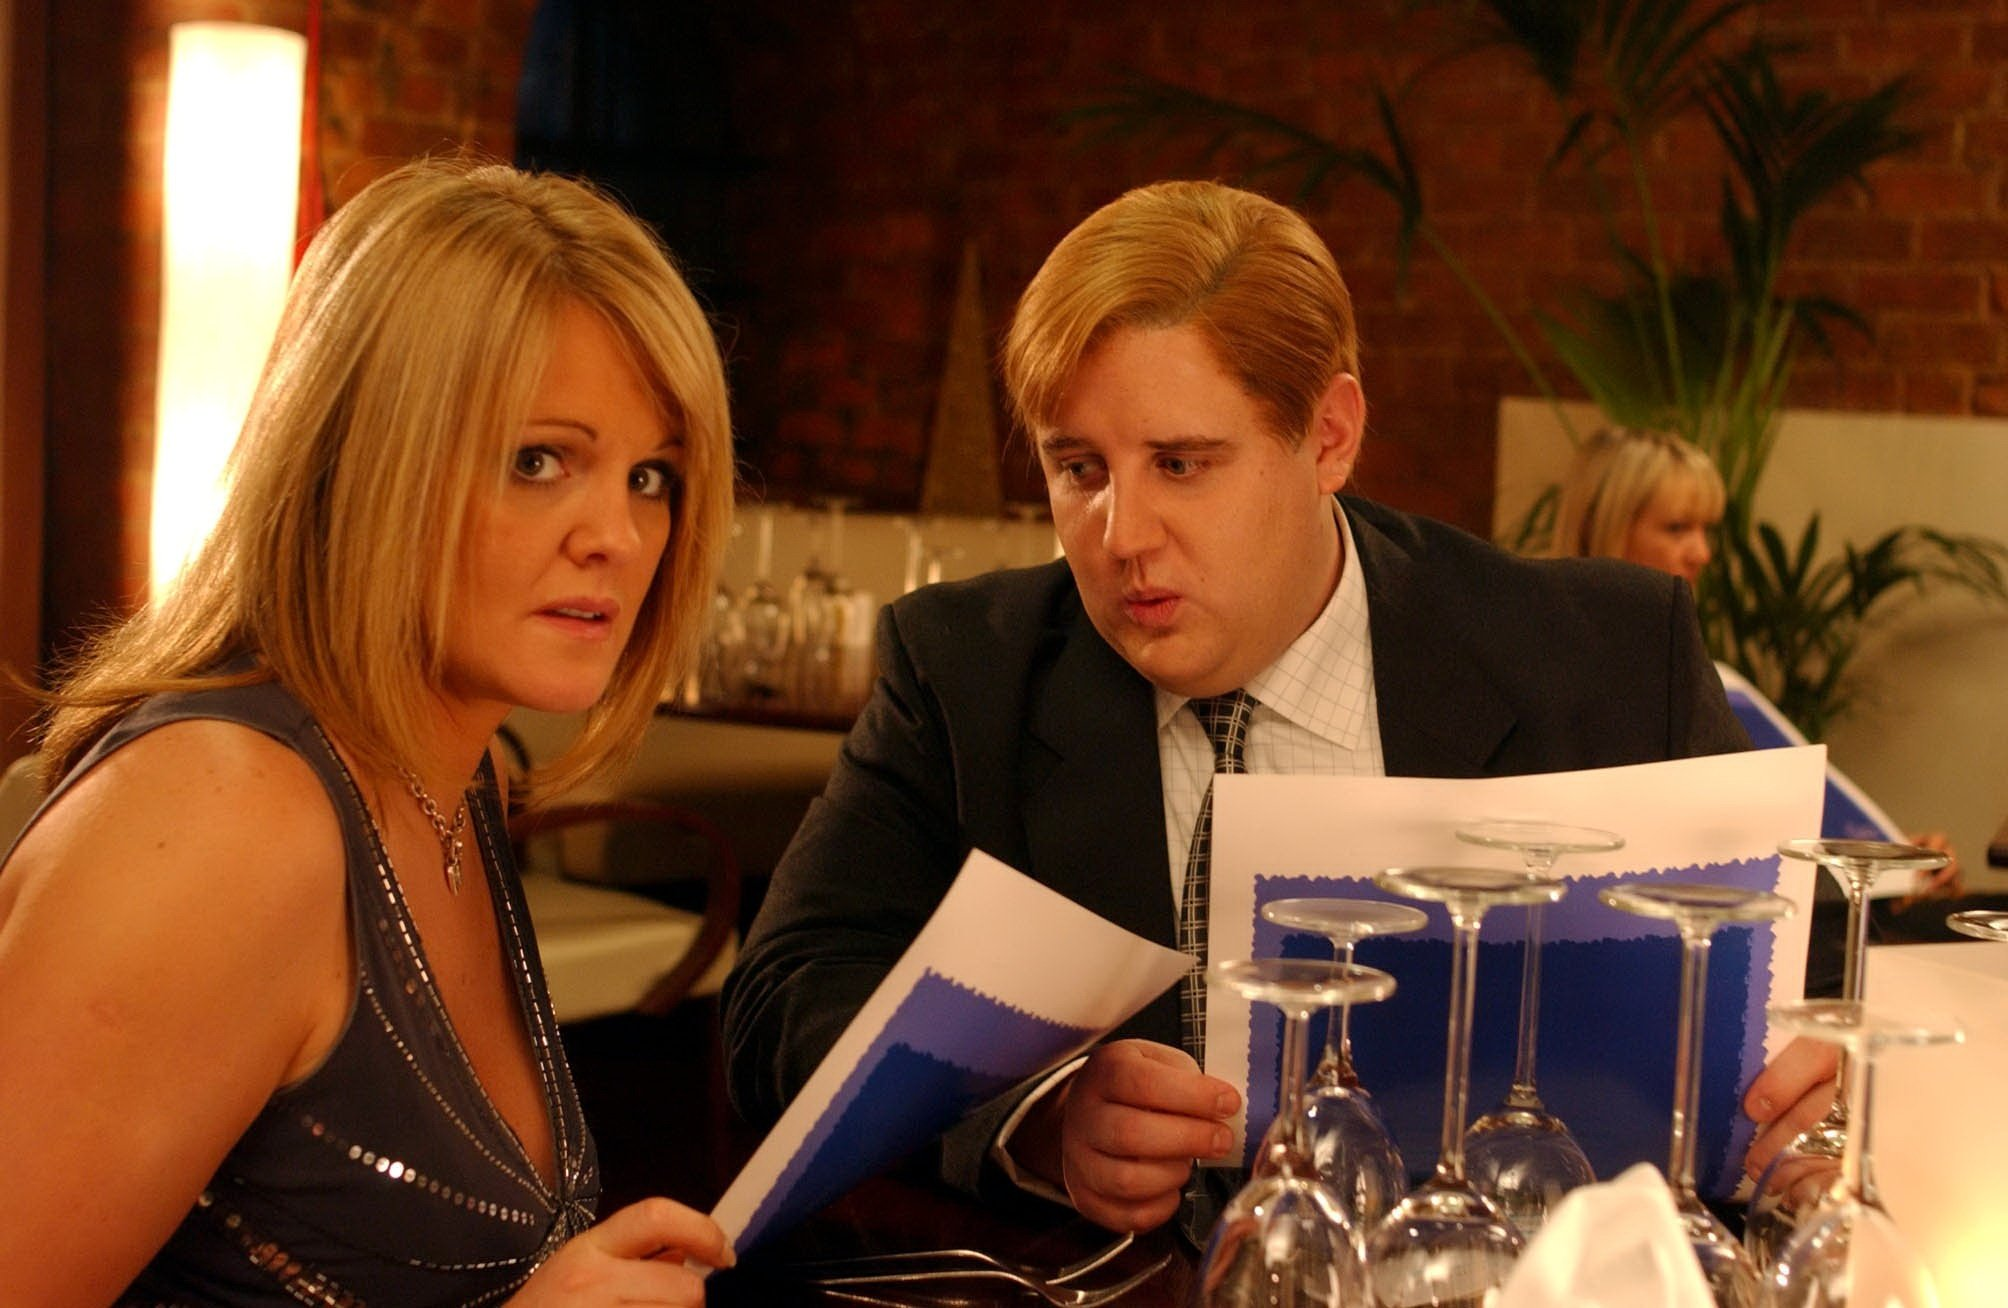 Editorial use only. Exclusive - Premium Rates Apply. Call your Account Manager for pricing. Mandatory Credit: Photo by ITV/REX/Shutterstock (709206kk) 'Coronation Street' TV - 2004 - After some initial reservations Shelley Unwin (SALLY LINDSAY) is pleasantly surprised when drayman Eric Gartside (PETER KAY) takes her out to a posh restaurant. ITV ARCHIVE